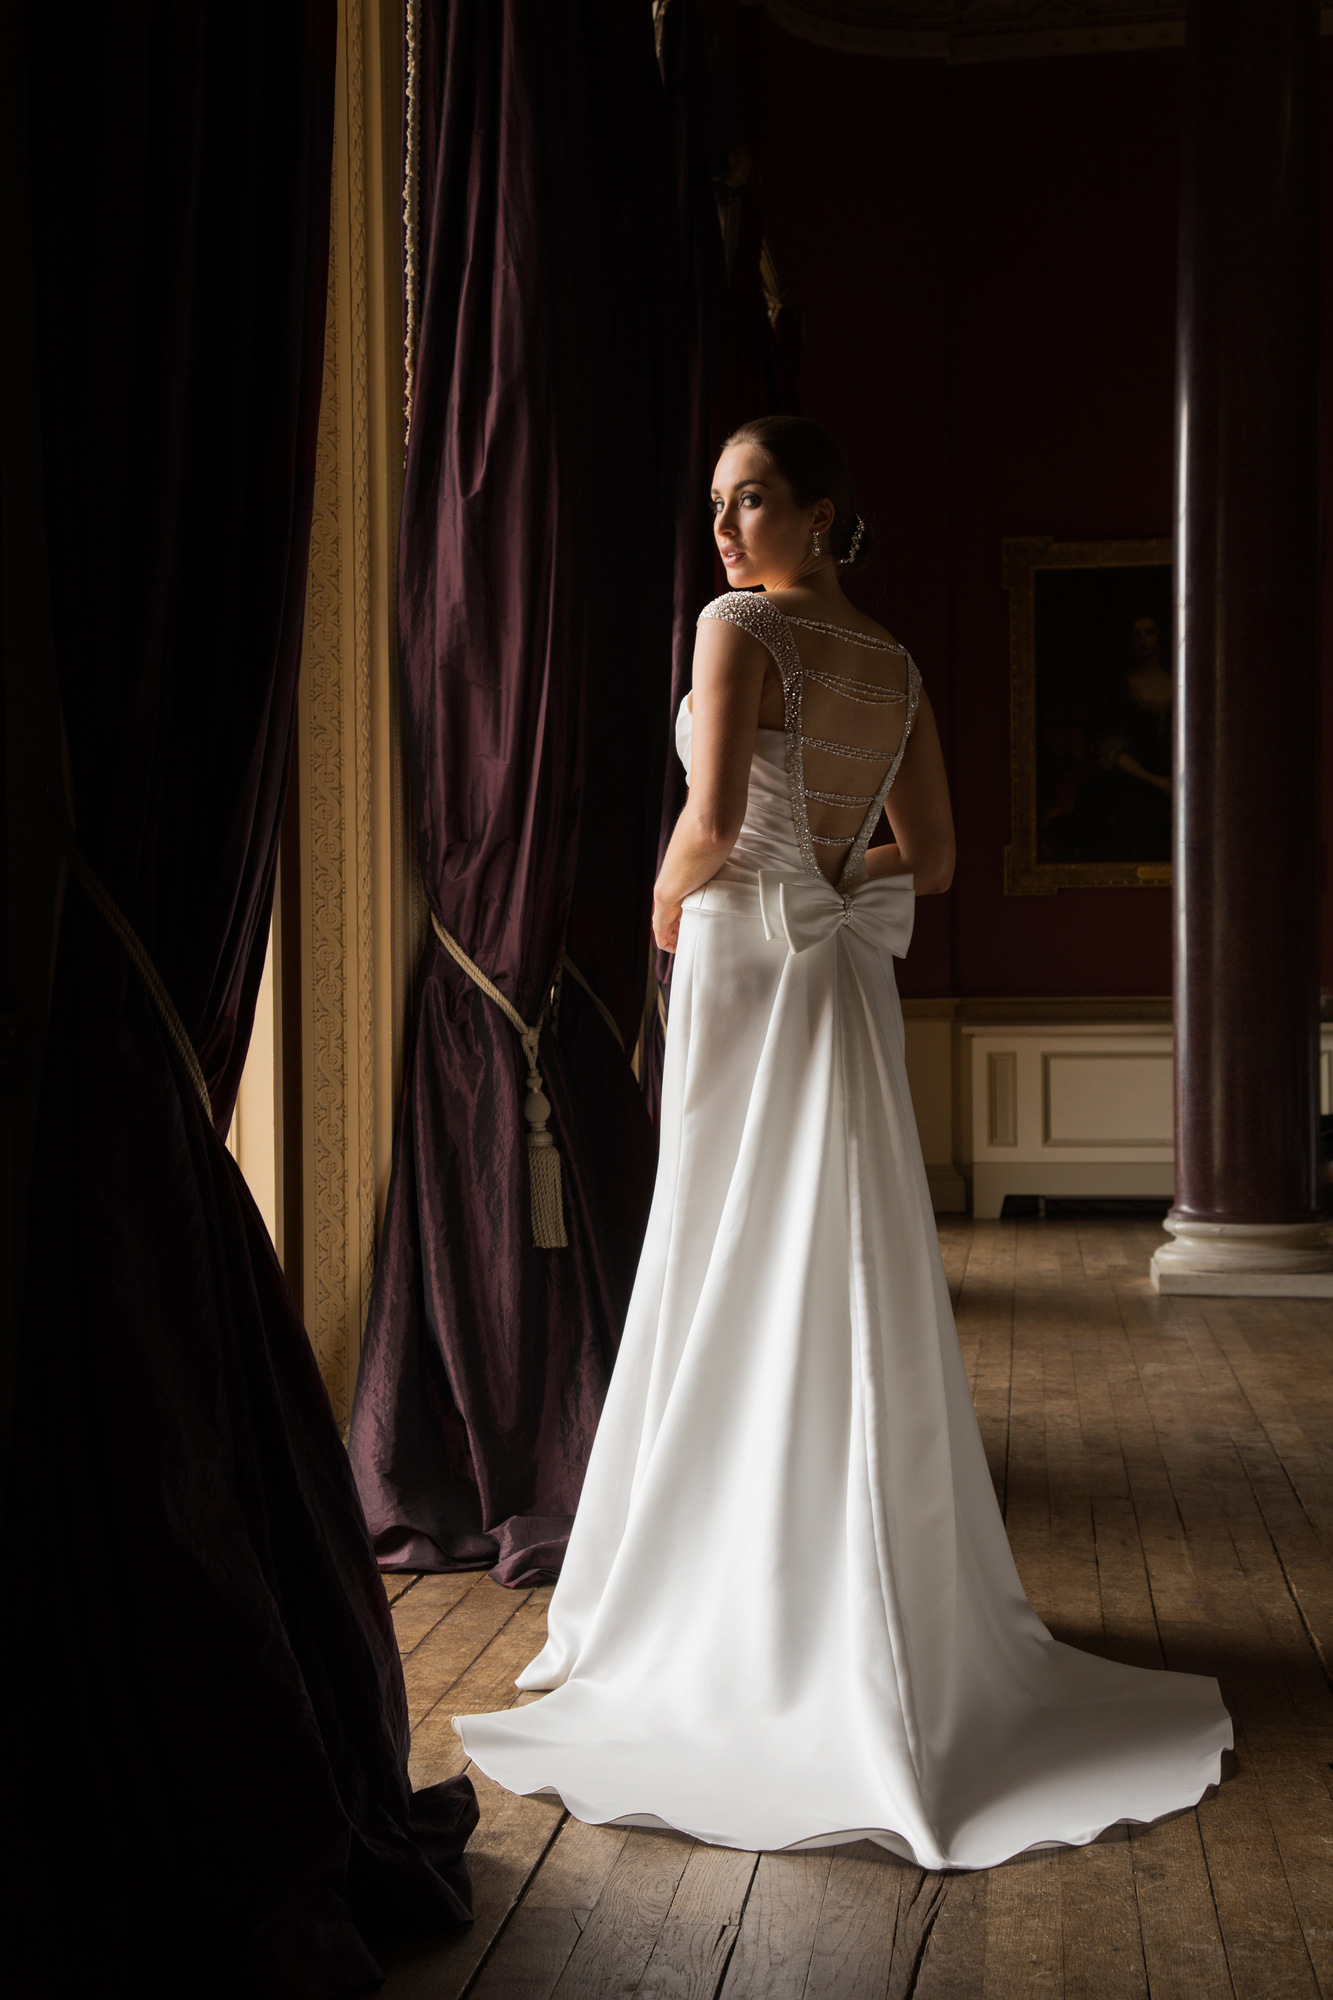 Gorgeous Satin gown with beaded straps, stunning beaded chain details across the deep V back & fully detachable train.